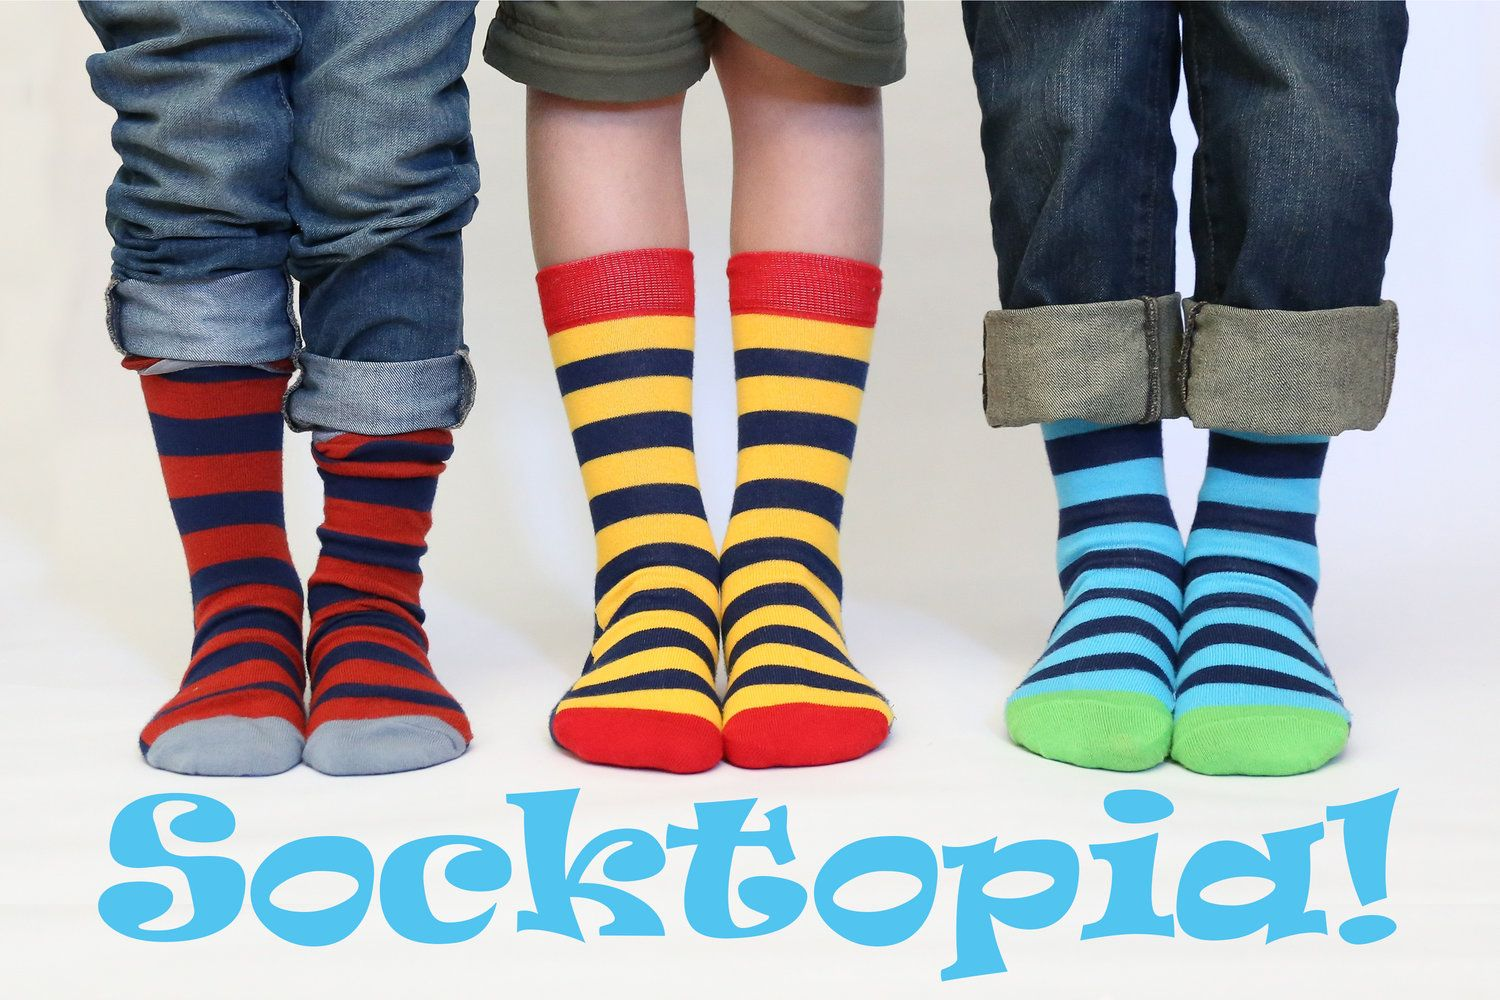 Through the We Help Two Socktopia campaign, organizations not only ...